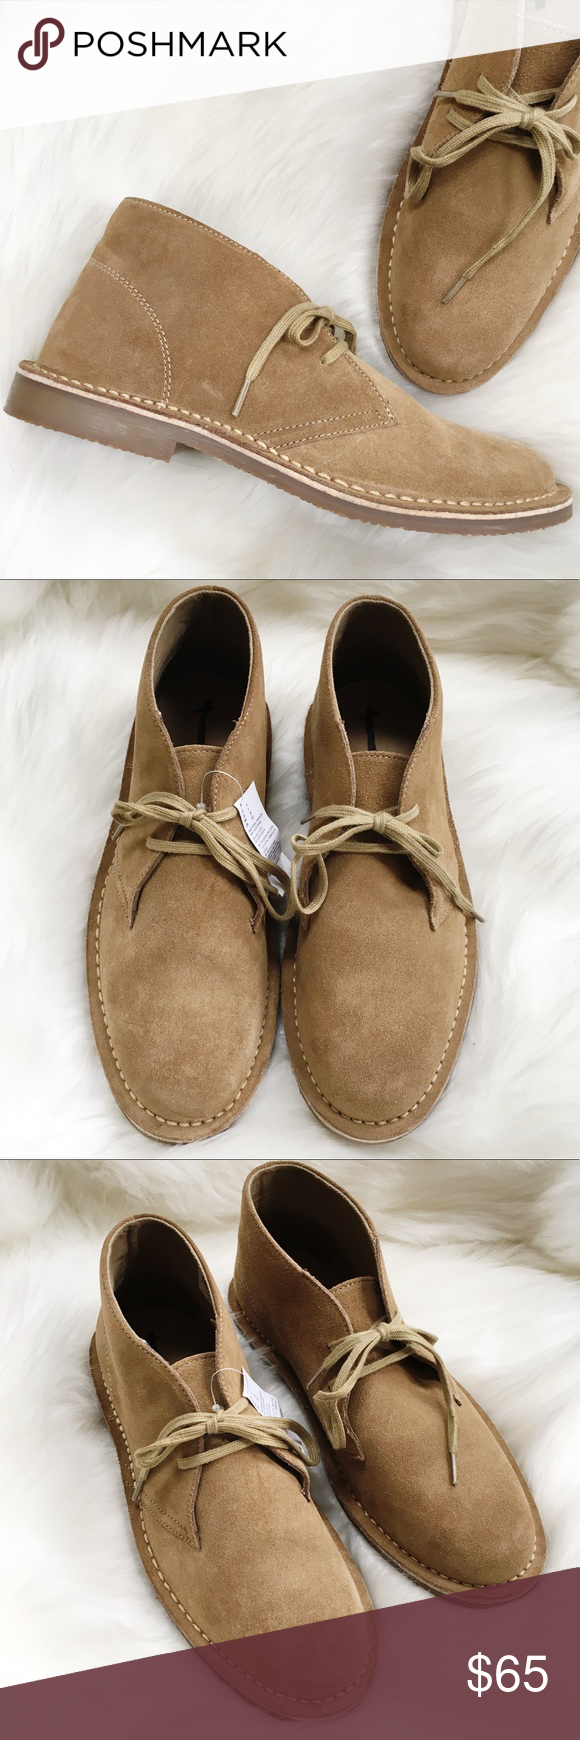 e5d6b50e9 AEO Tan Suede Chukka Boots-Size 9-NWT New with Tags and no box Inside brand  name has strike through 100% genuine leather upper Rubber soles US 9 Lace  ups ...